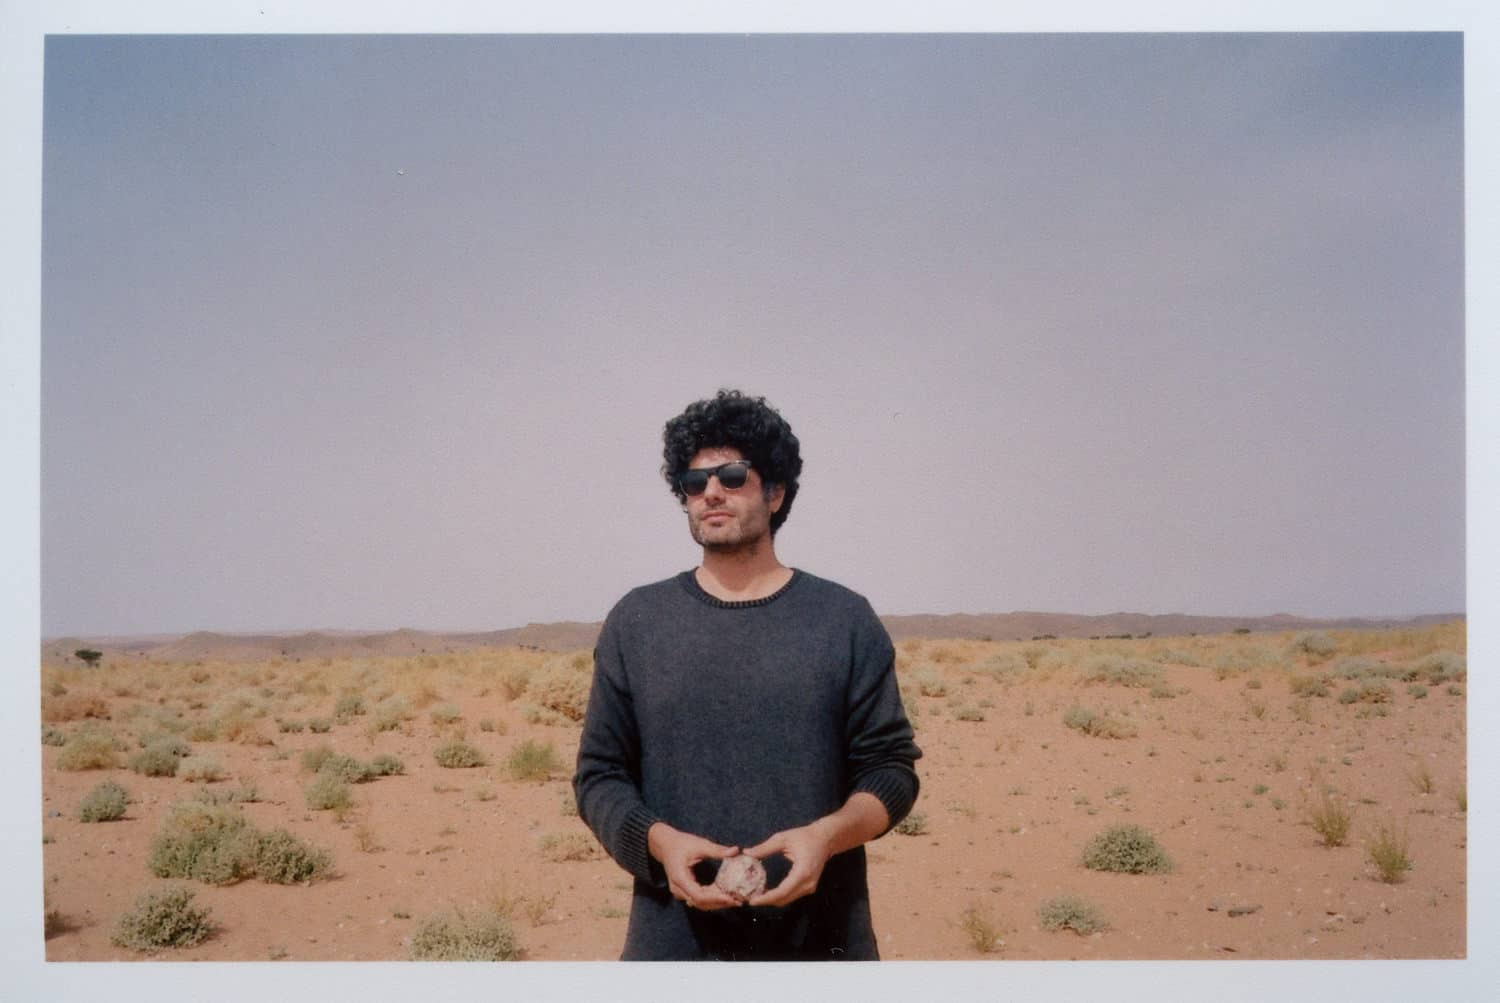 gorgeous man looking at infinity in the desert